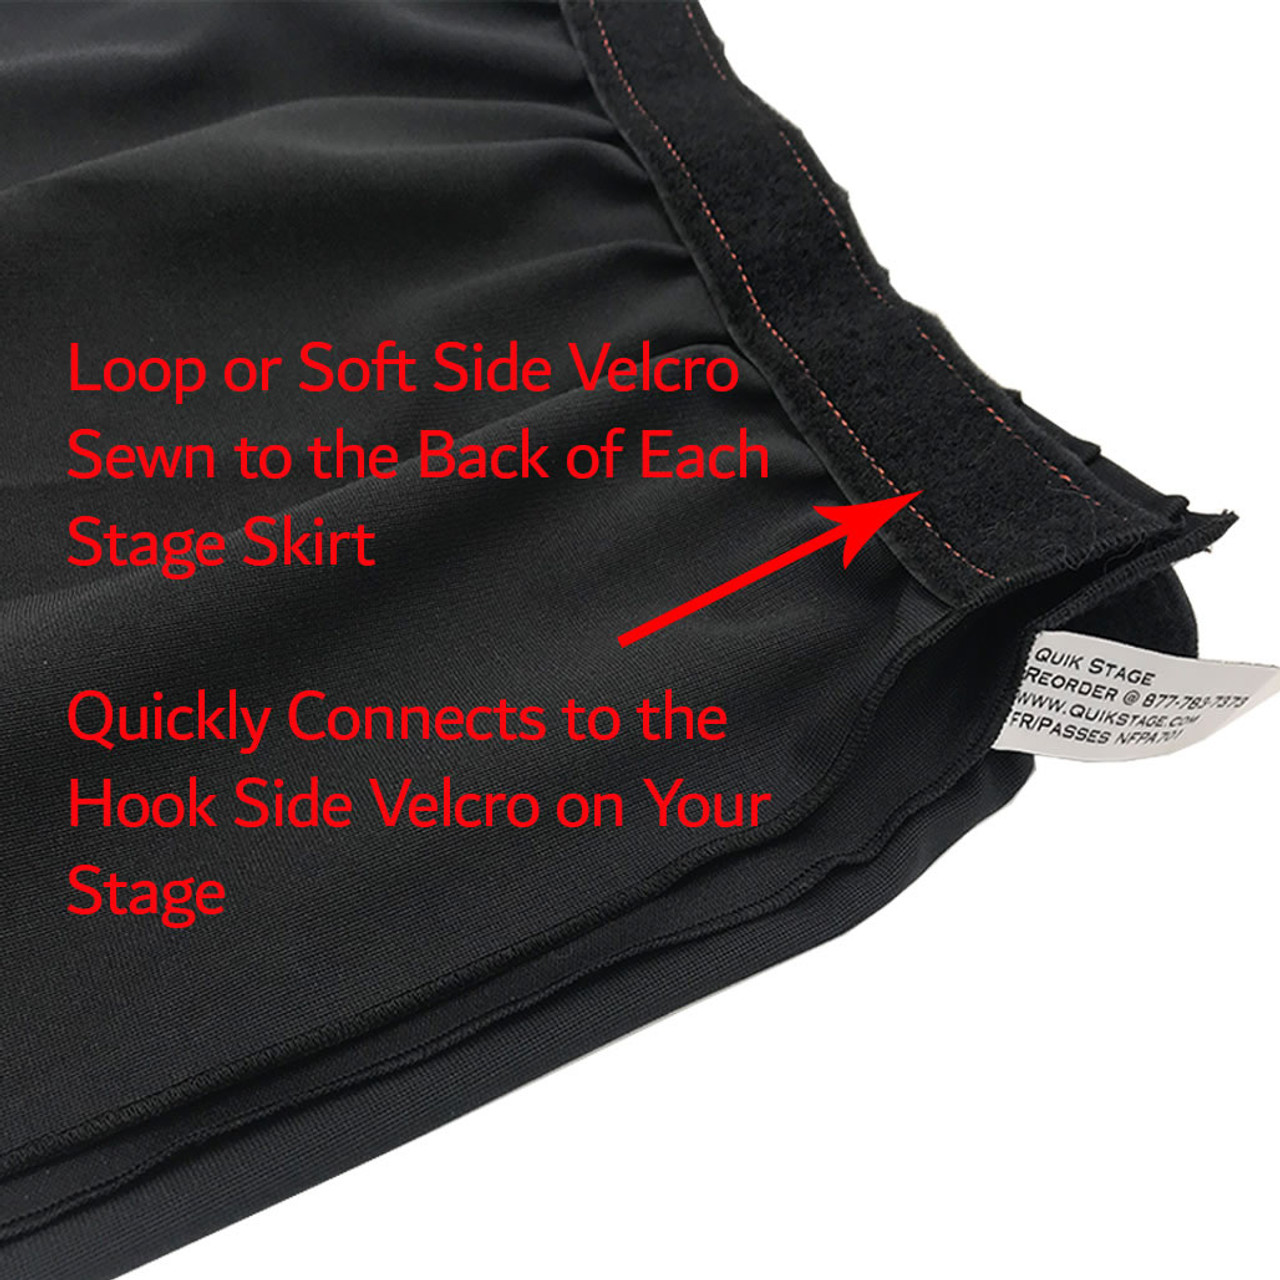 16 Inches High Best Value Black Expo Pleat Polyester Stage Skirting with Velcro. FR Rated. - Loop Velcro sewn on back.